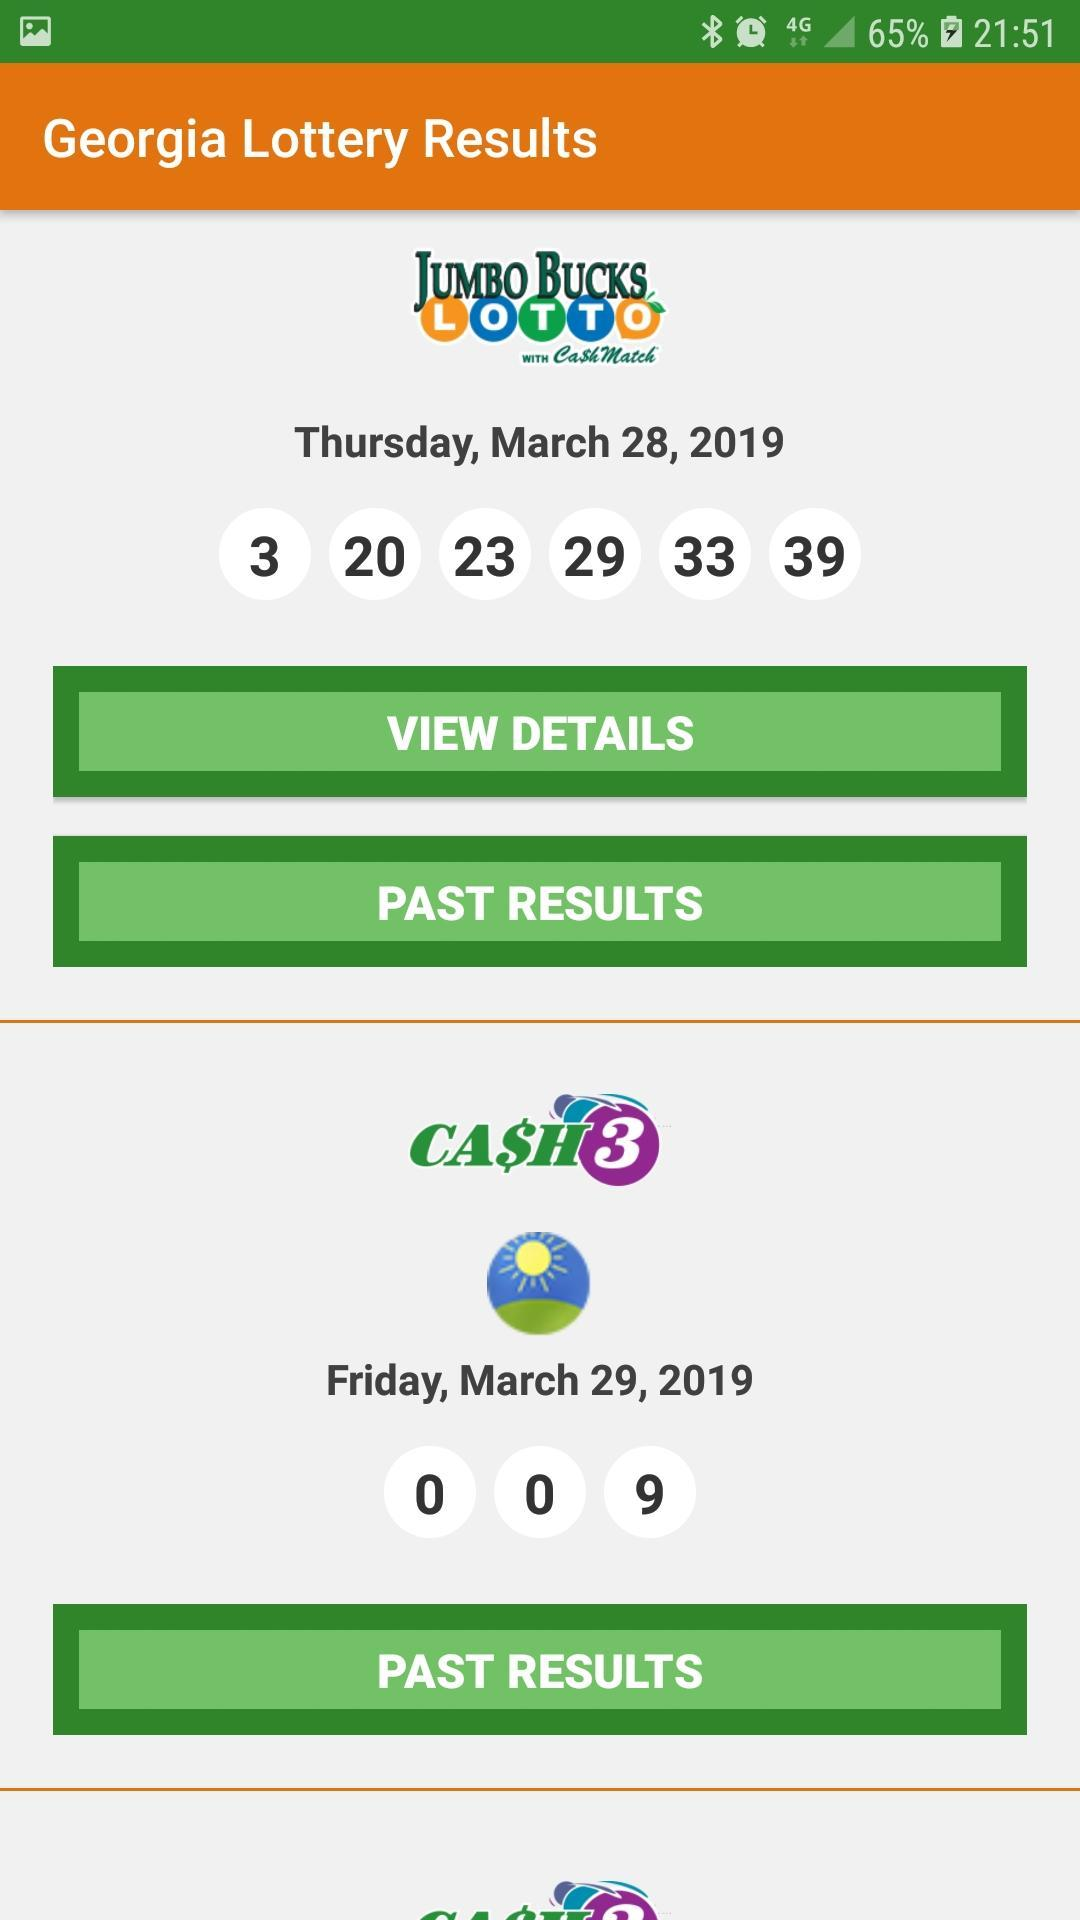 Georgia Lottery Results for Android - APK Download